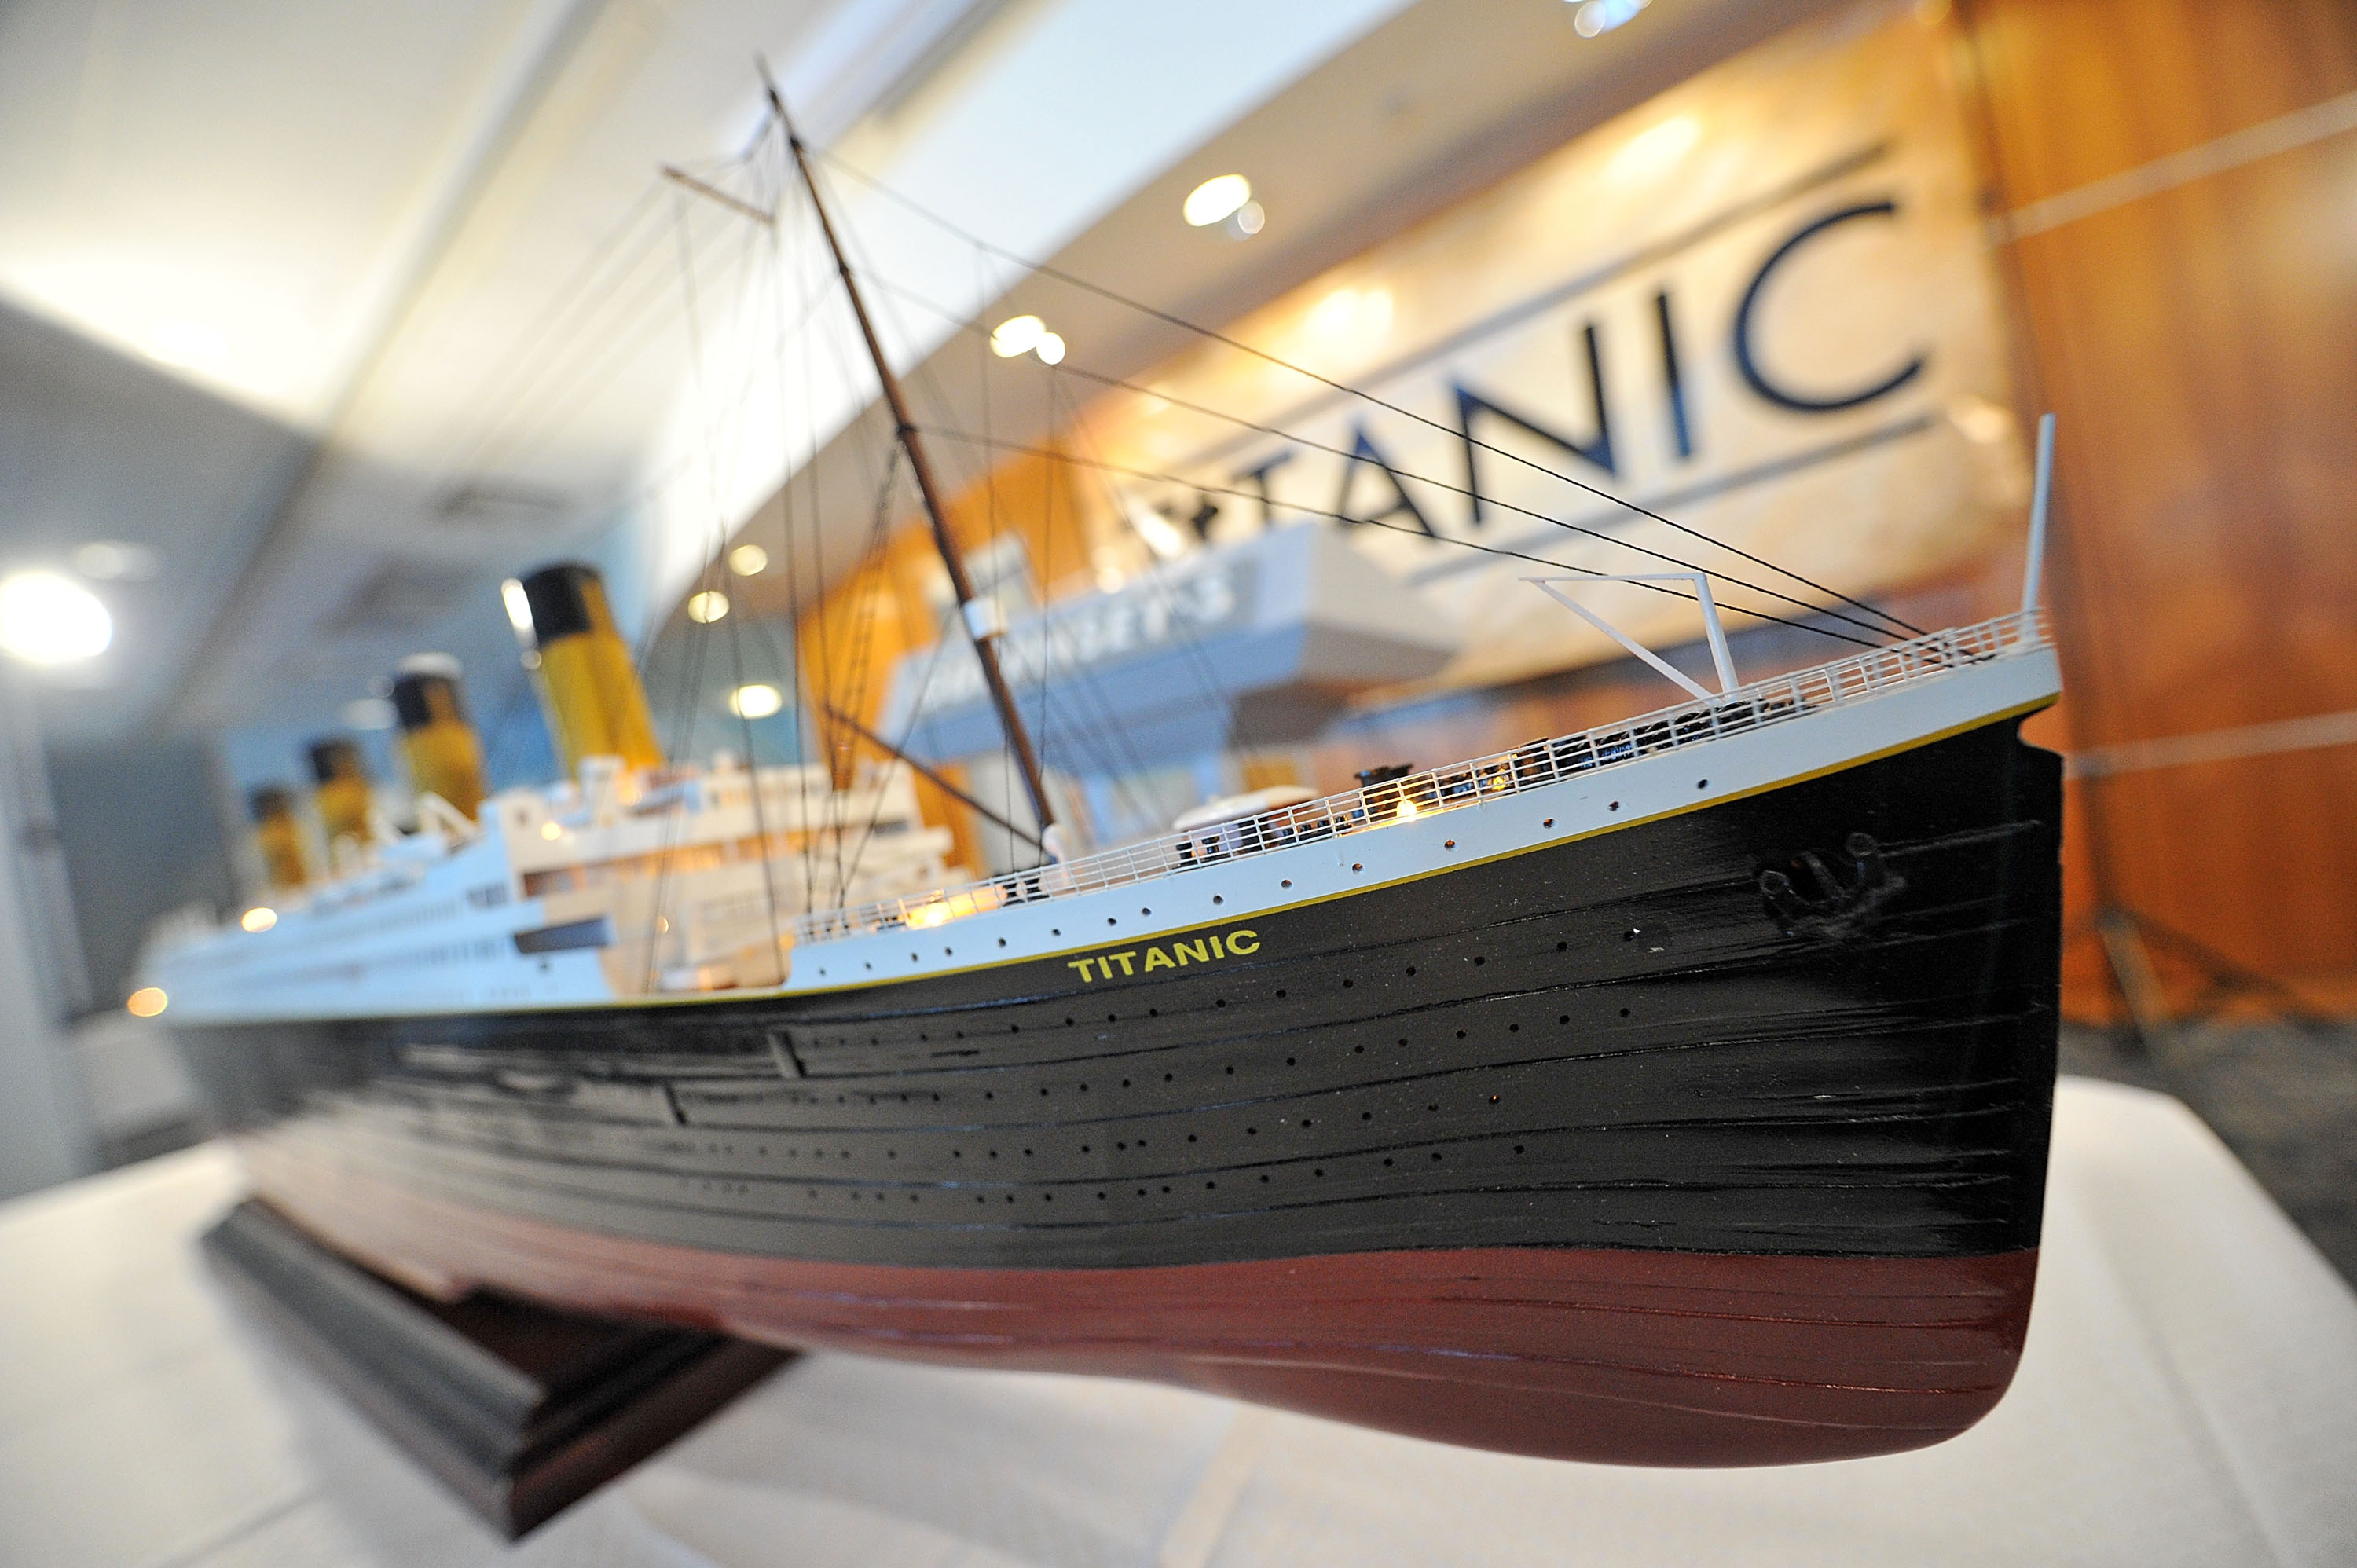 A scale model of the RMS Titanic on display at the Titanic Auction preview at the Intrepid Sea-Air-Space Museum on January 5, 2012 in New York City.